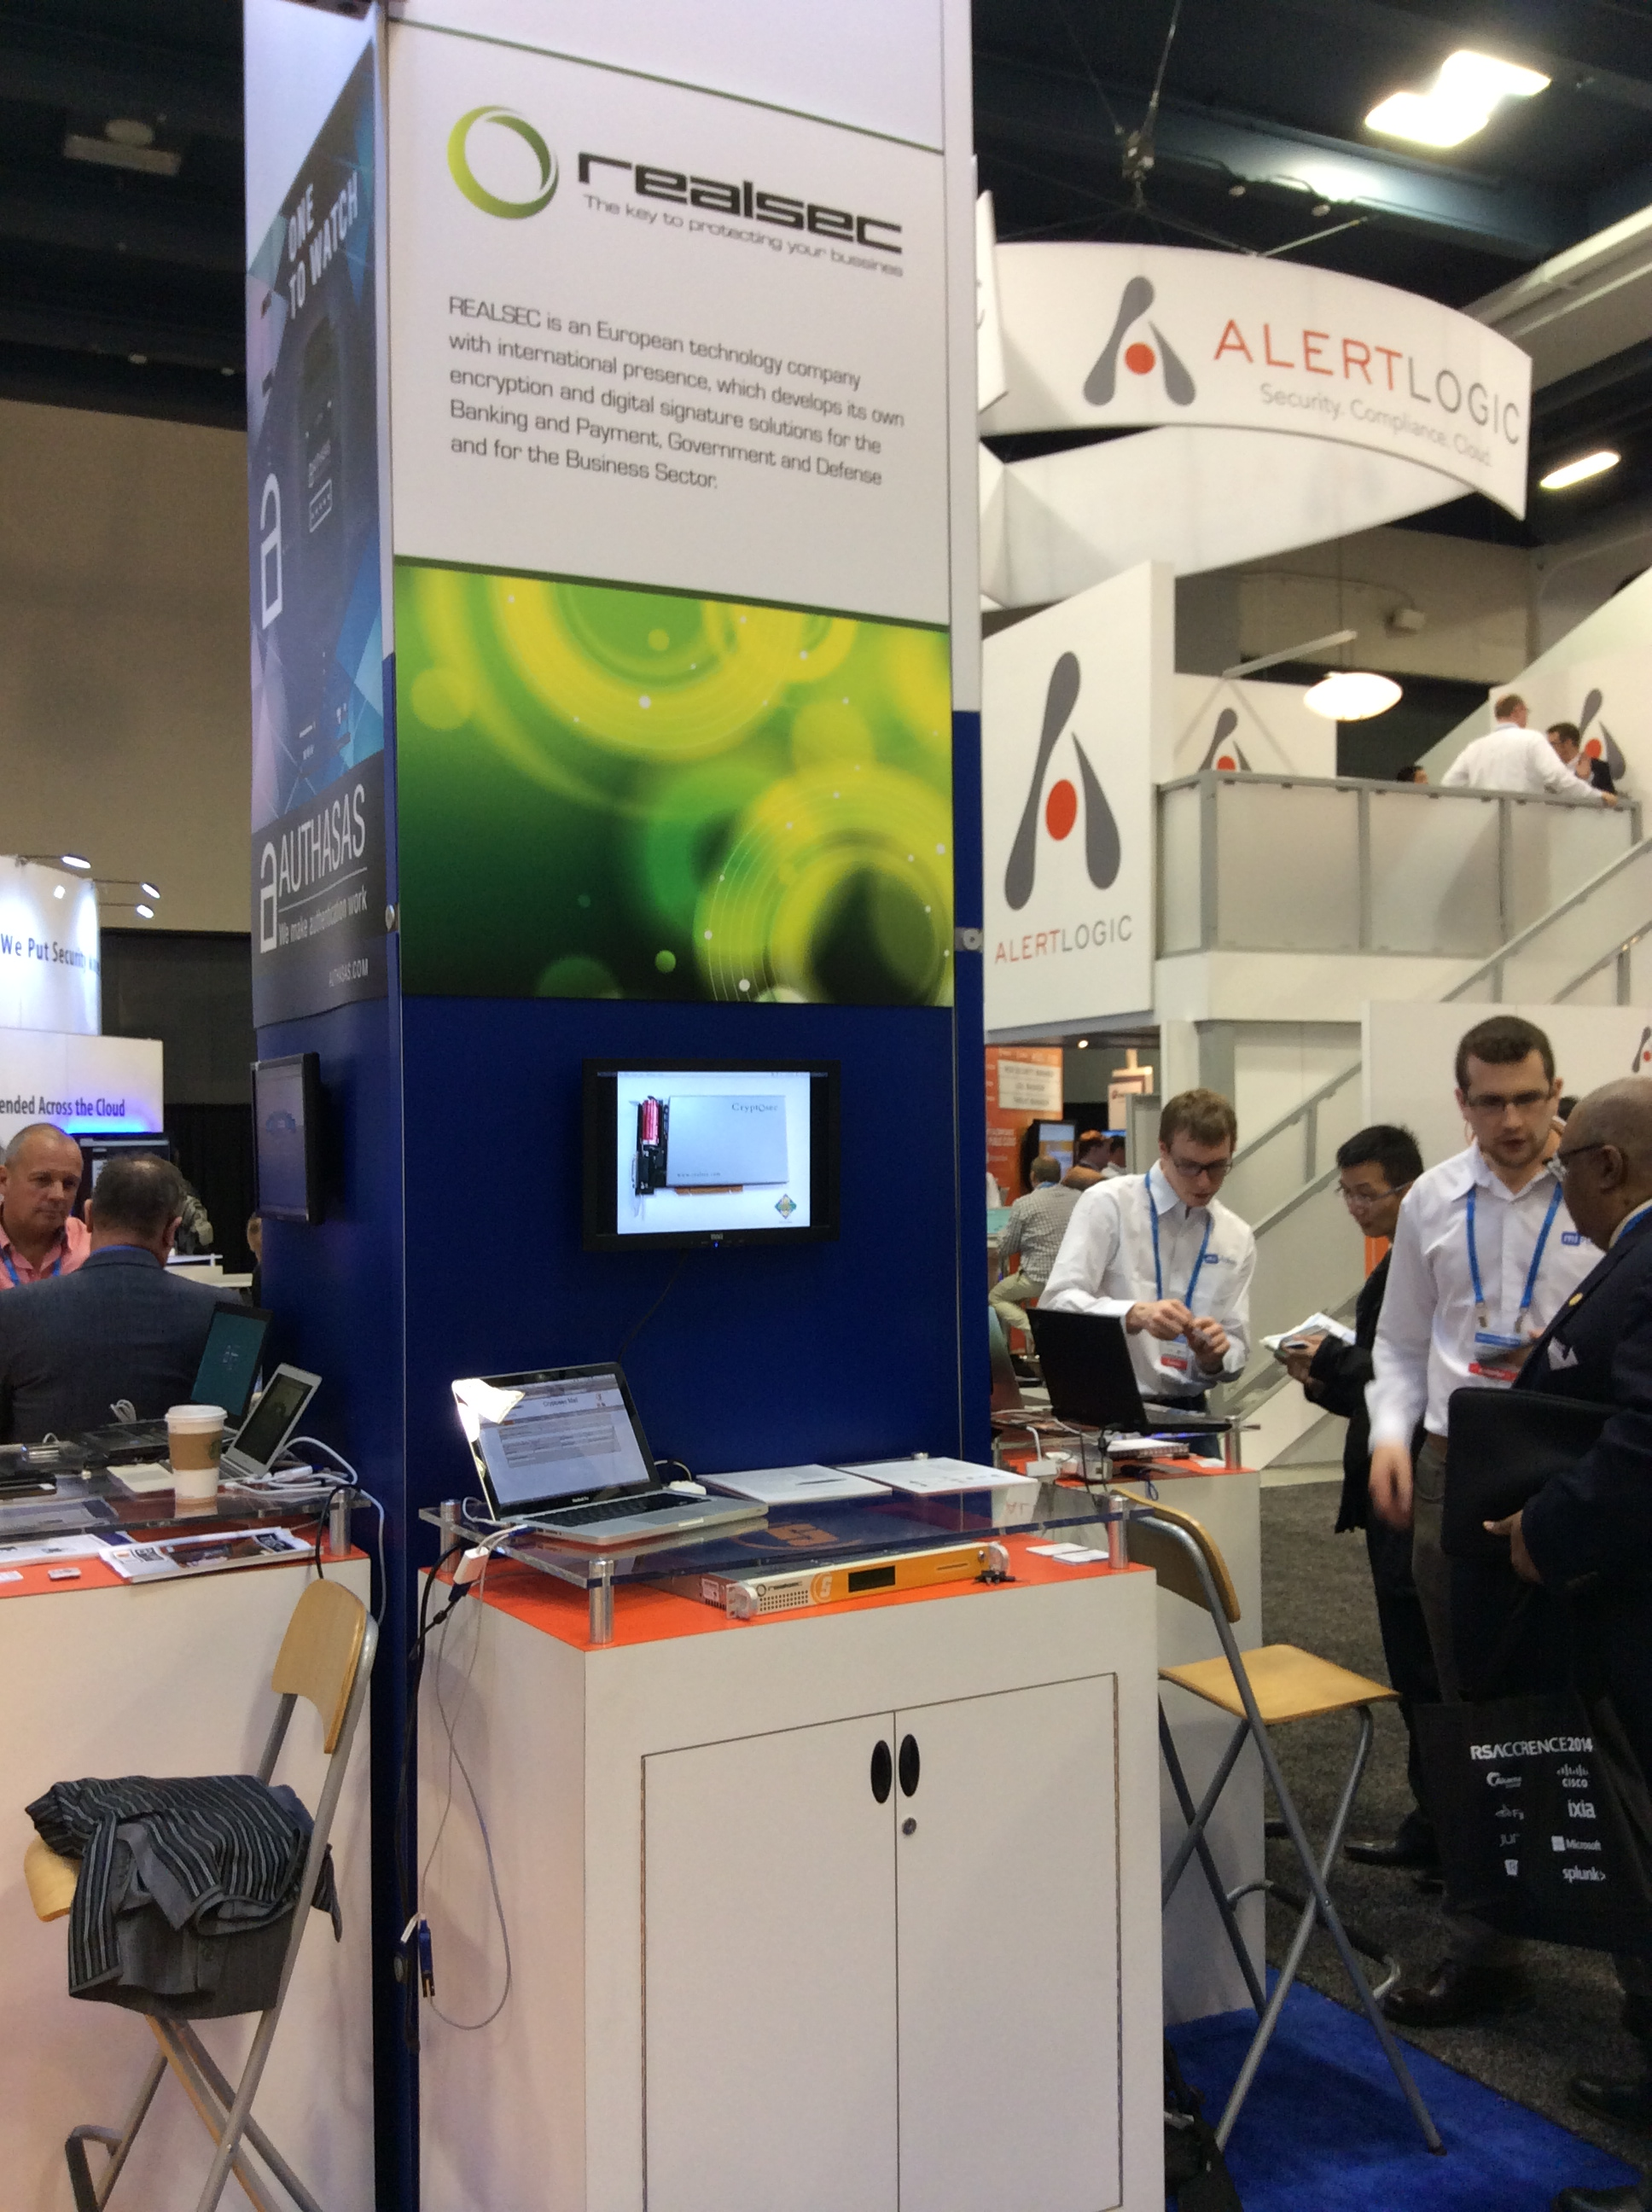 Realsec's stand at RSA Conference 2014